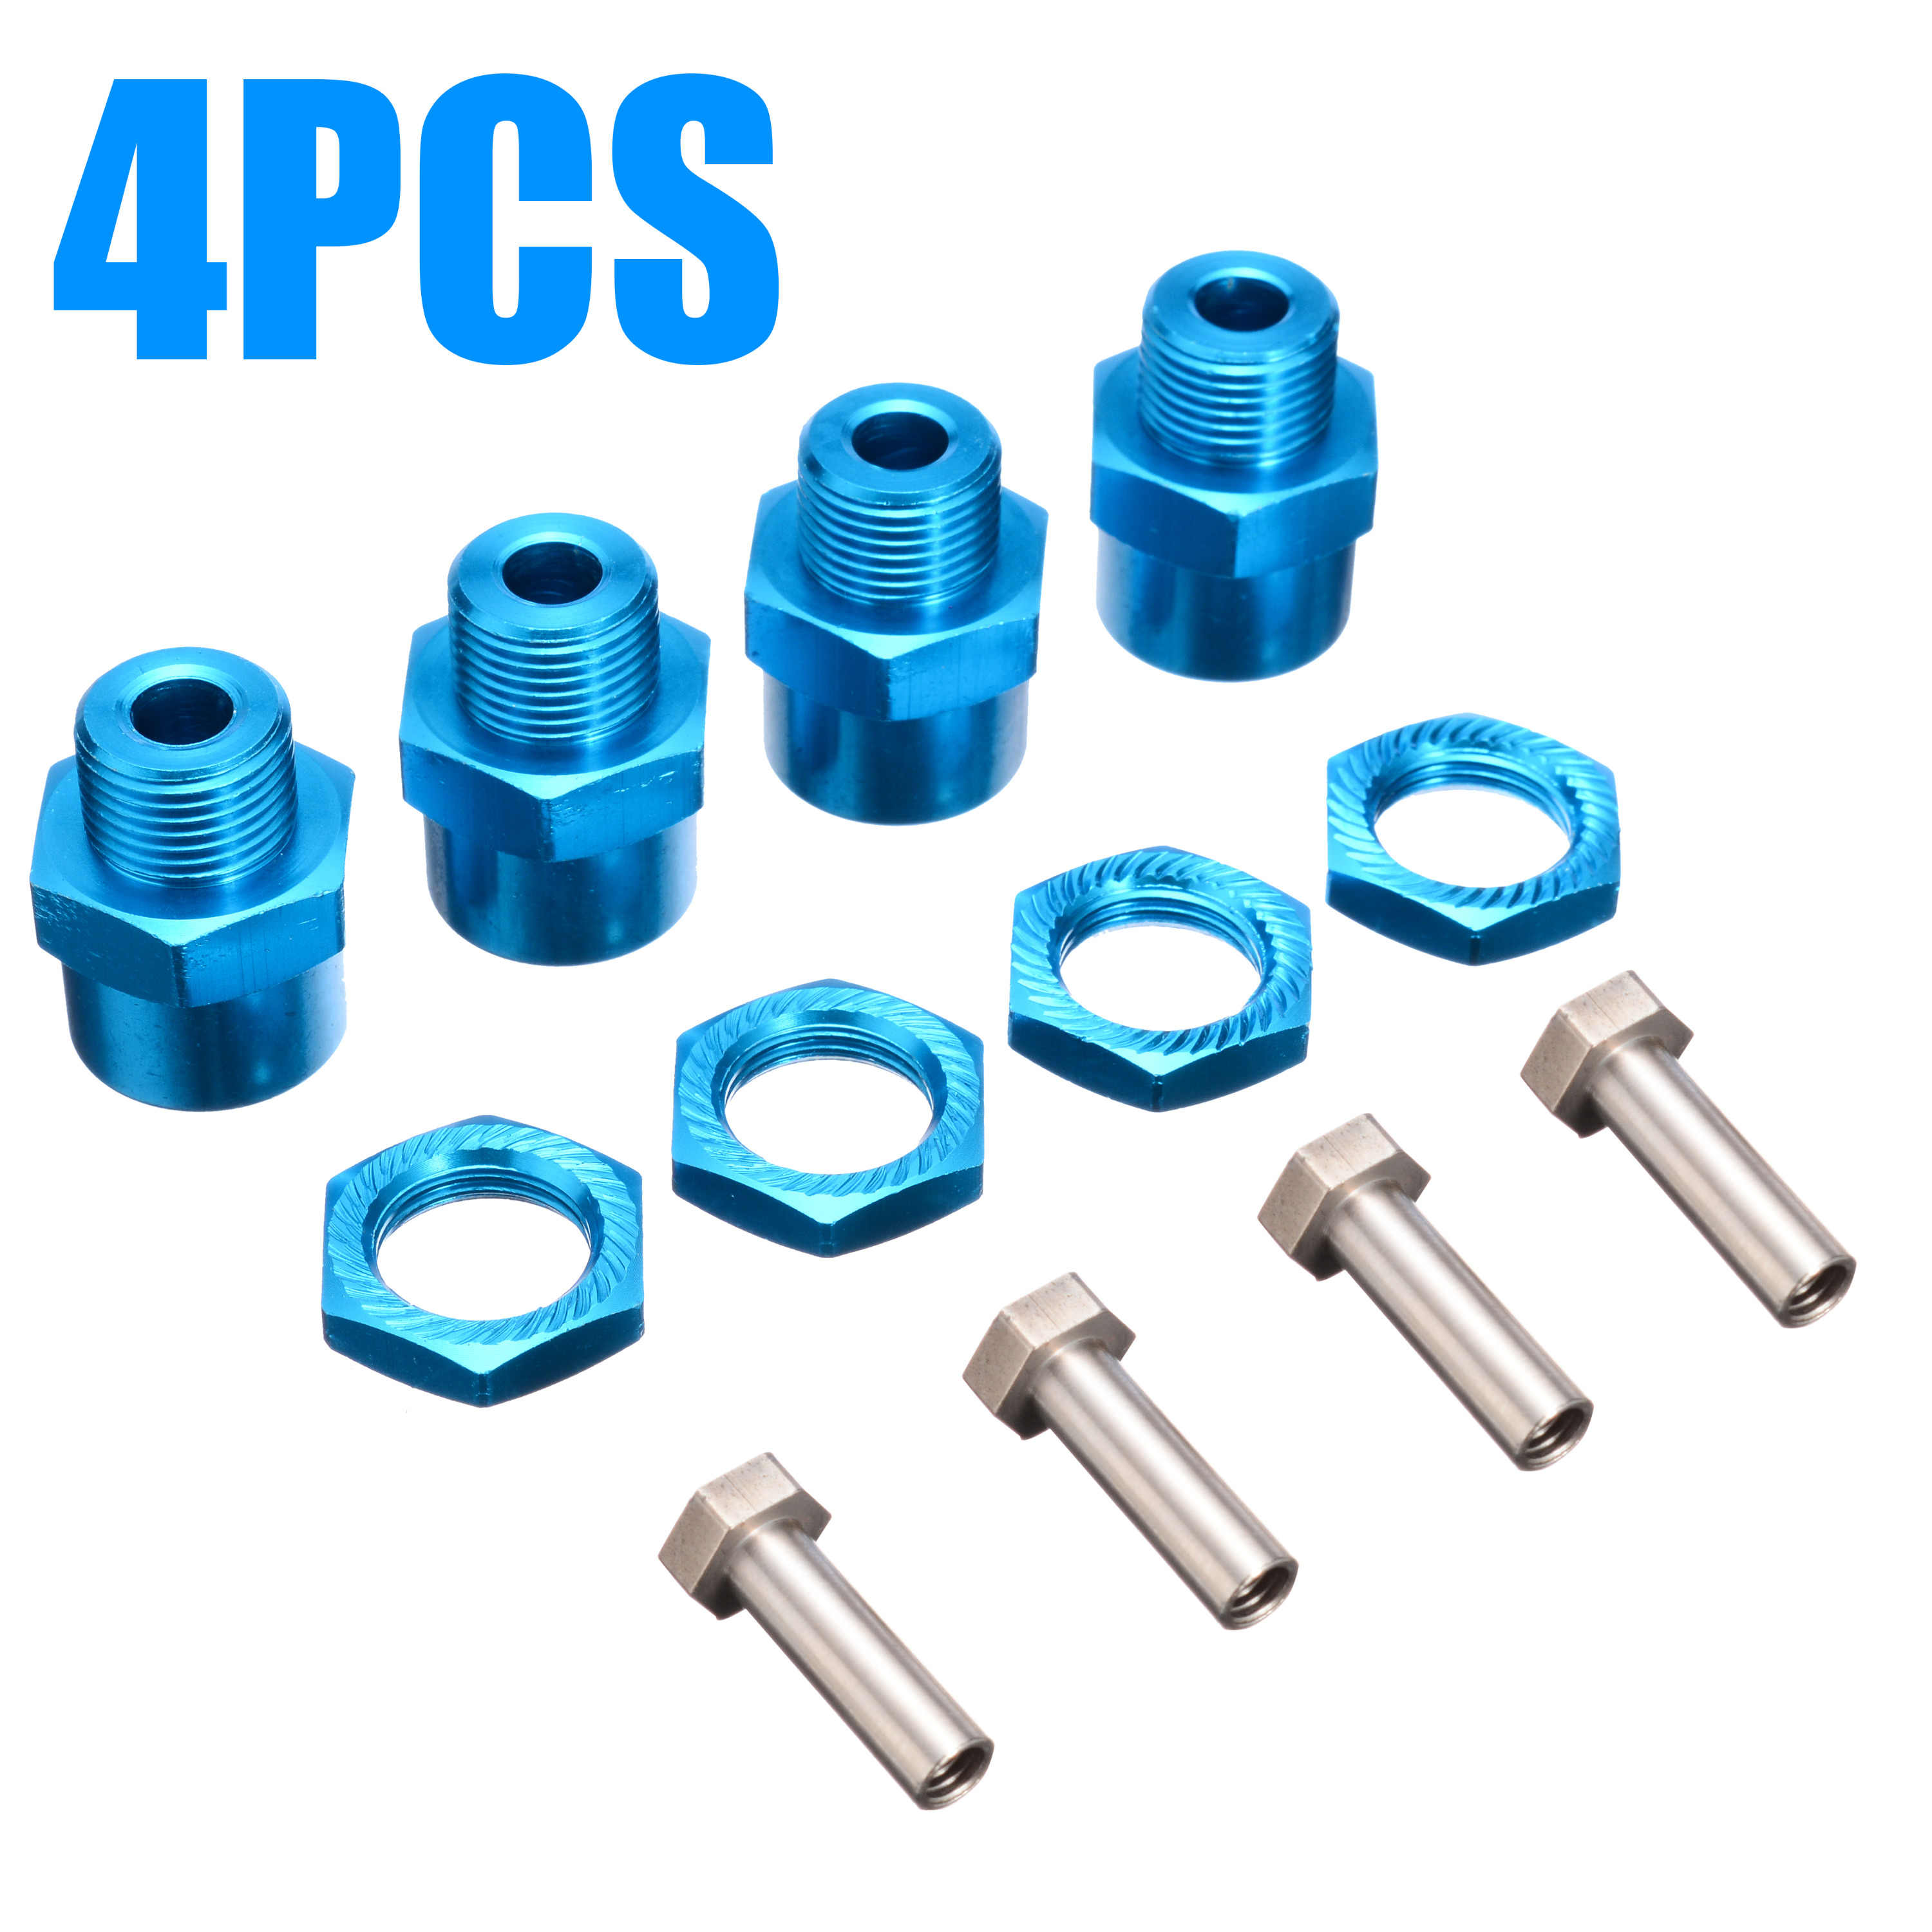 4-Pack 12mm to 17mm Wheel Hex Hub Adapter Extension Conversion 15mm Offset Extension for 1//10 RC Car Upgrade 1//8 Tires red